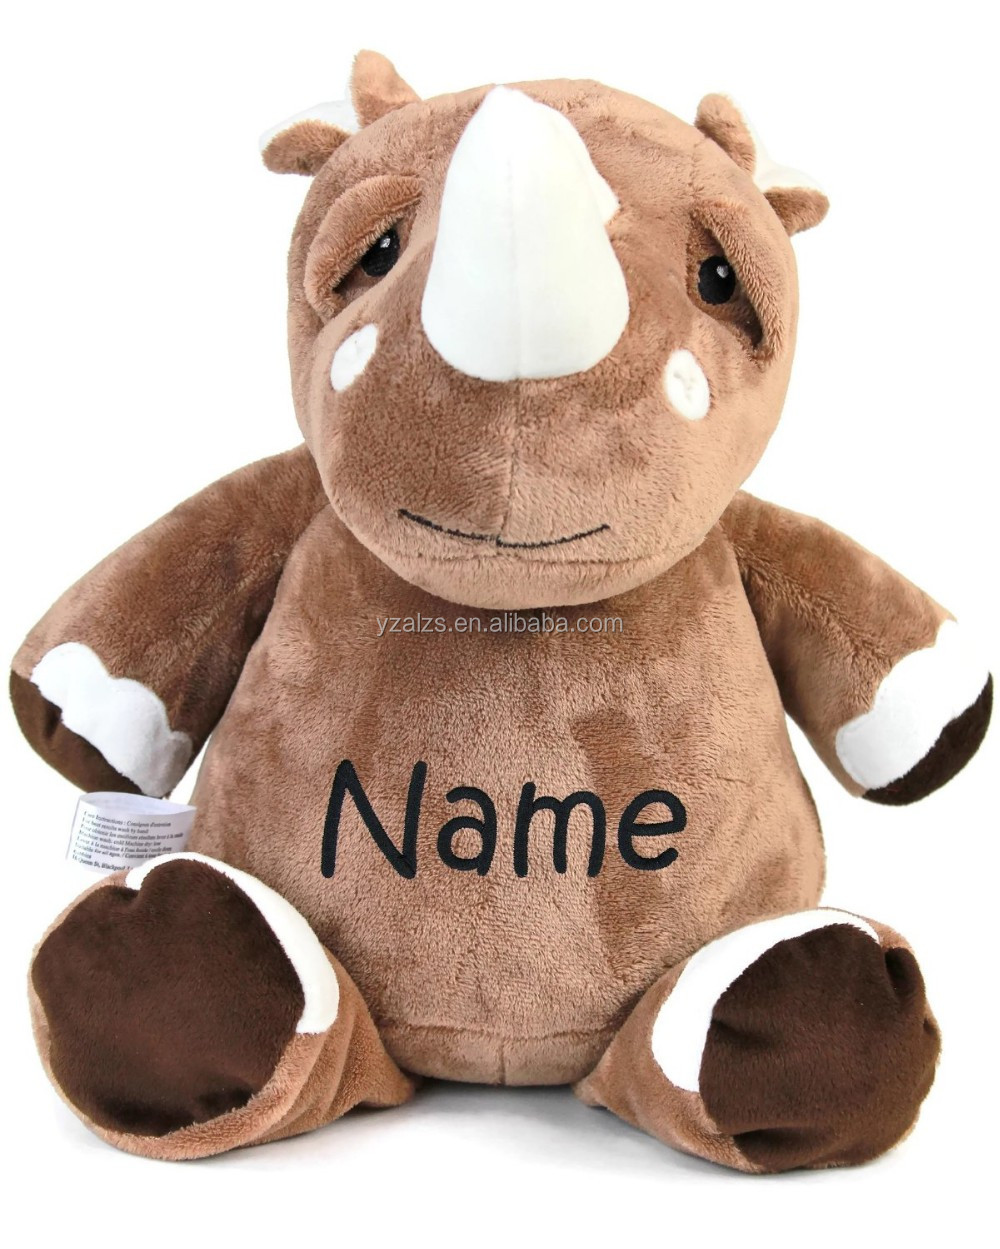 Embroeidery Name Plush Toy With Zipper And Removable Pods - Buy ...